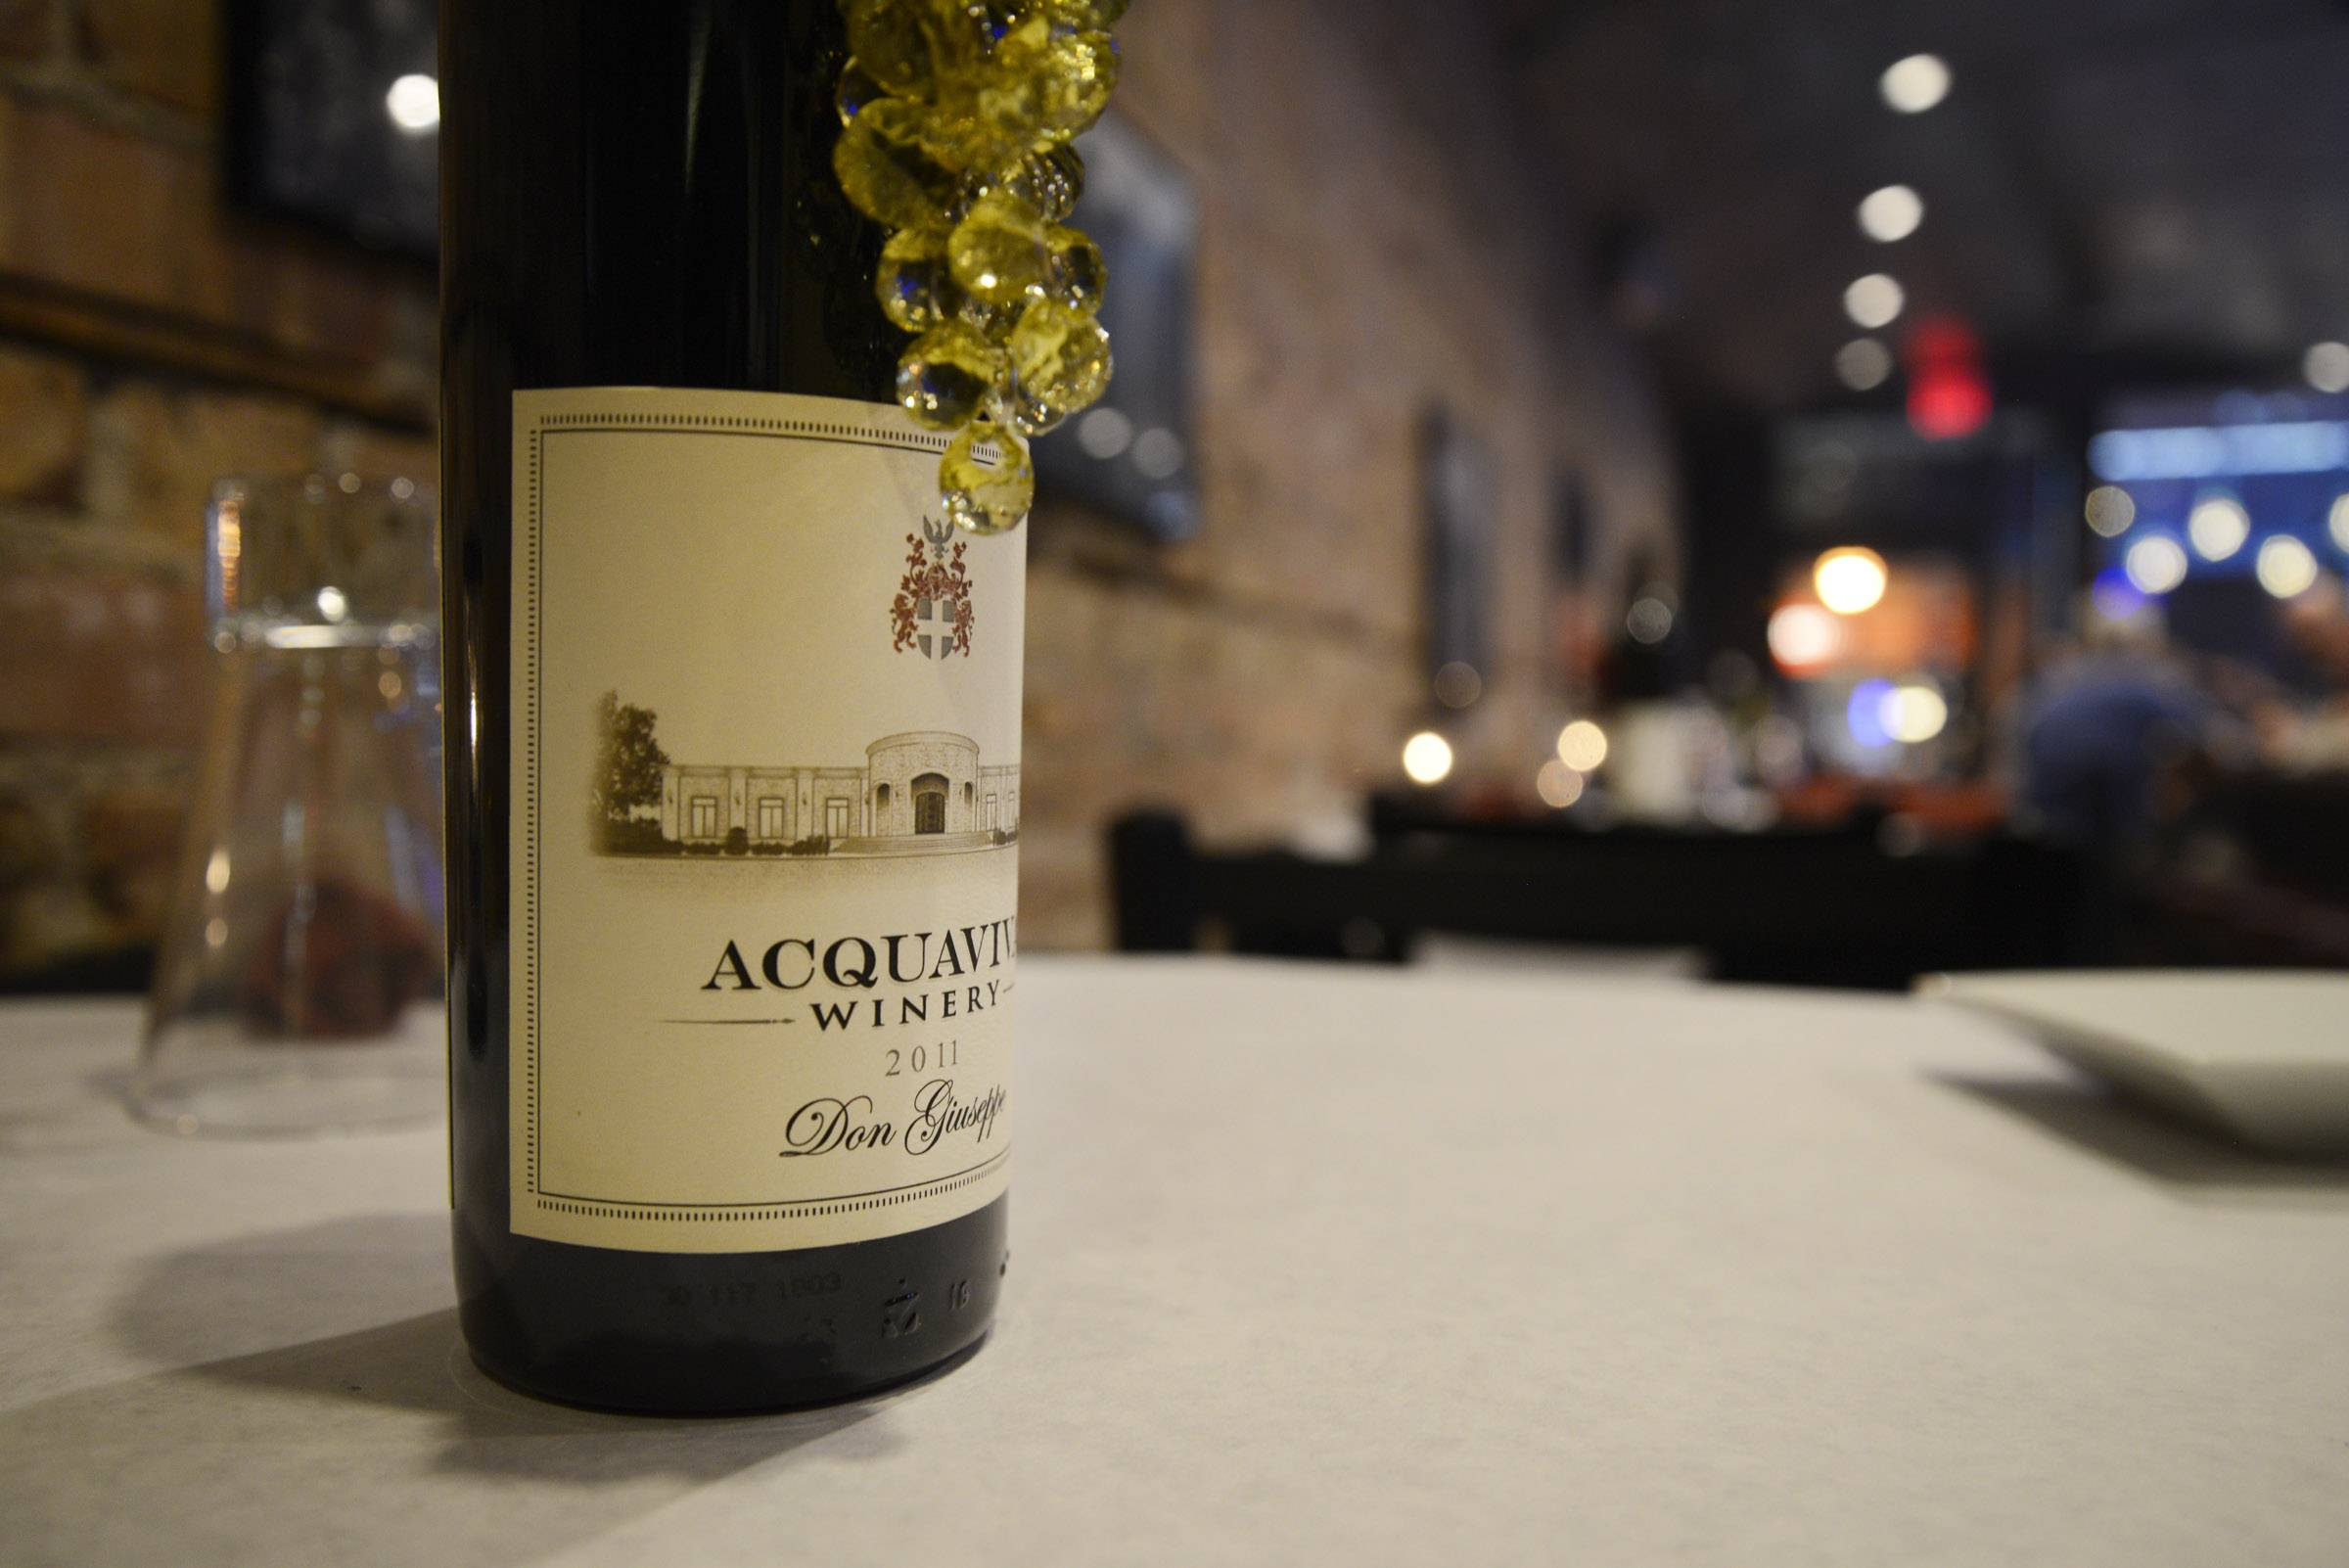 Acquaviva wines, made at the Maple Park winery, are available at the Acquaviva Tasting and Wine Bar in St. Charles.